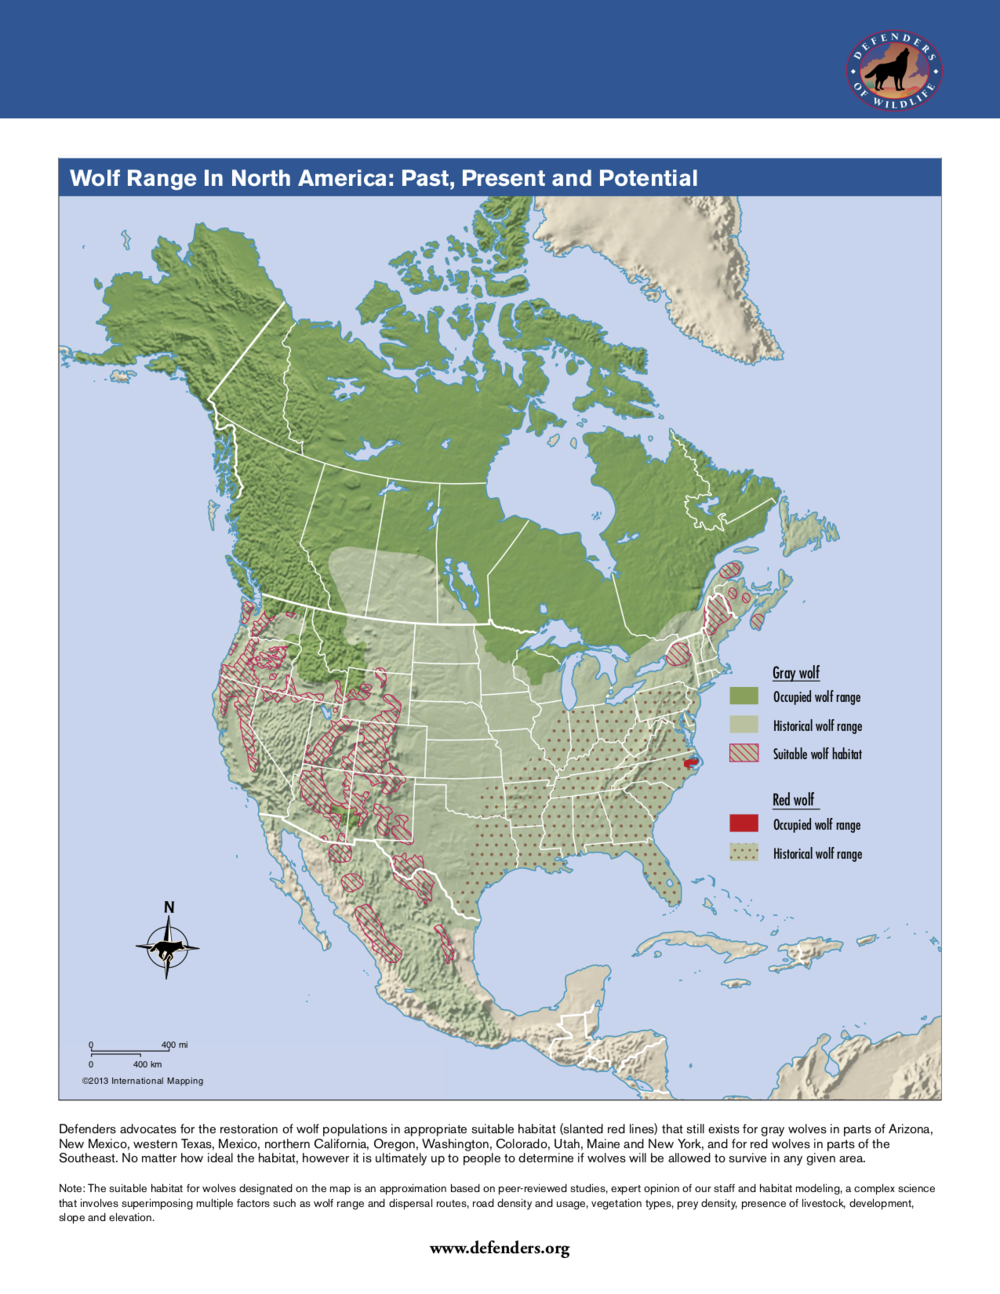 Map 5.  There seems to be an elevational and/or forested bias regarding what is considered suitable habitat in which to restore wolves. Remoteness and a lack of people is also important. As the map shows, wolves were present historically in deserts and grasslands.  Source:  Defenders of Wildlife